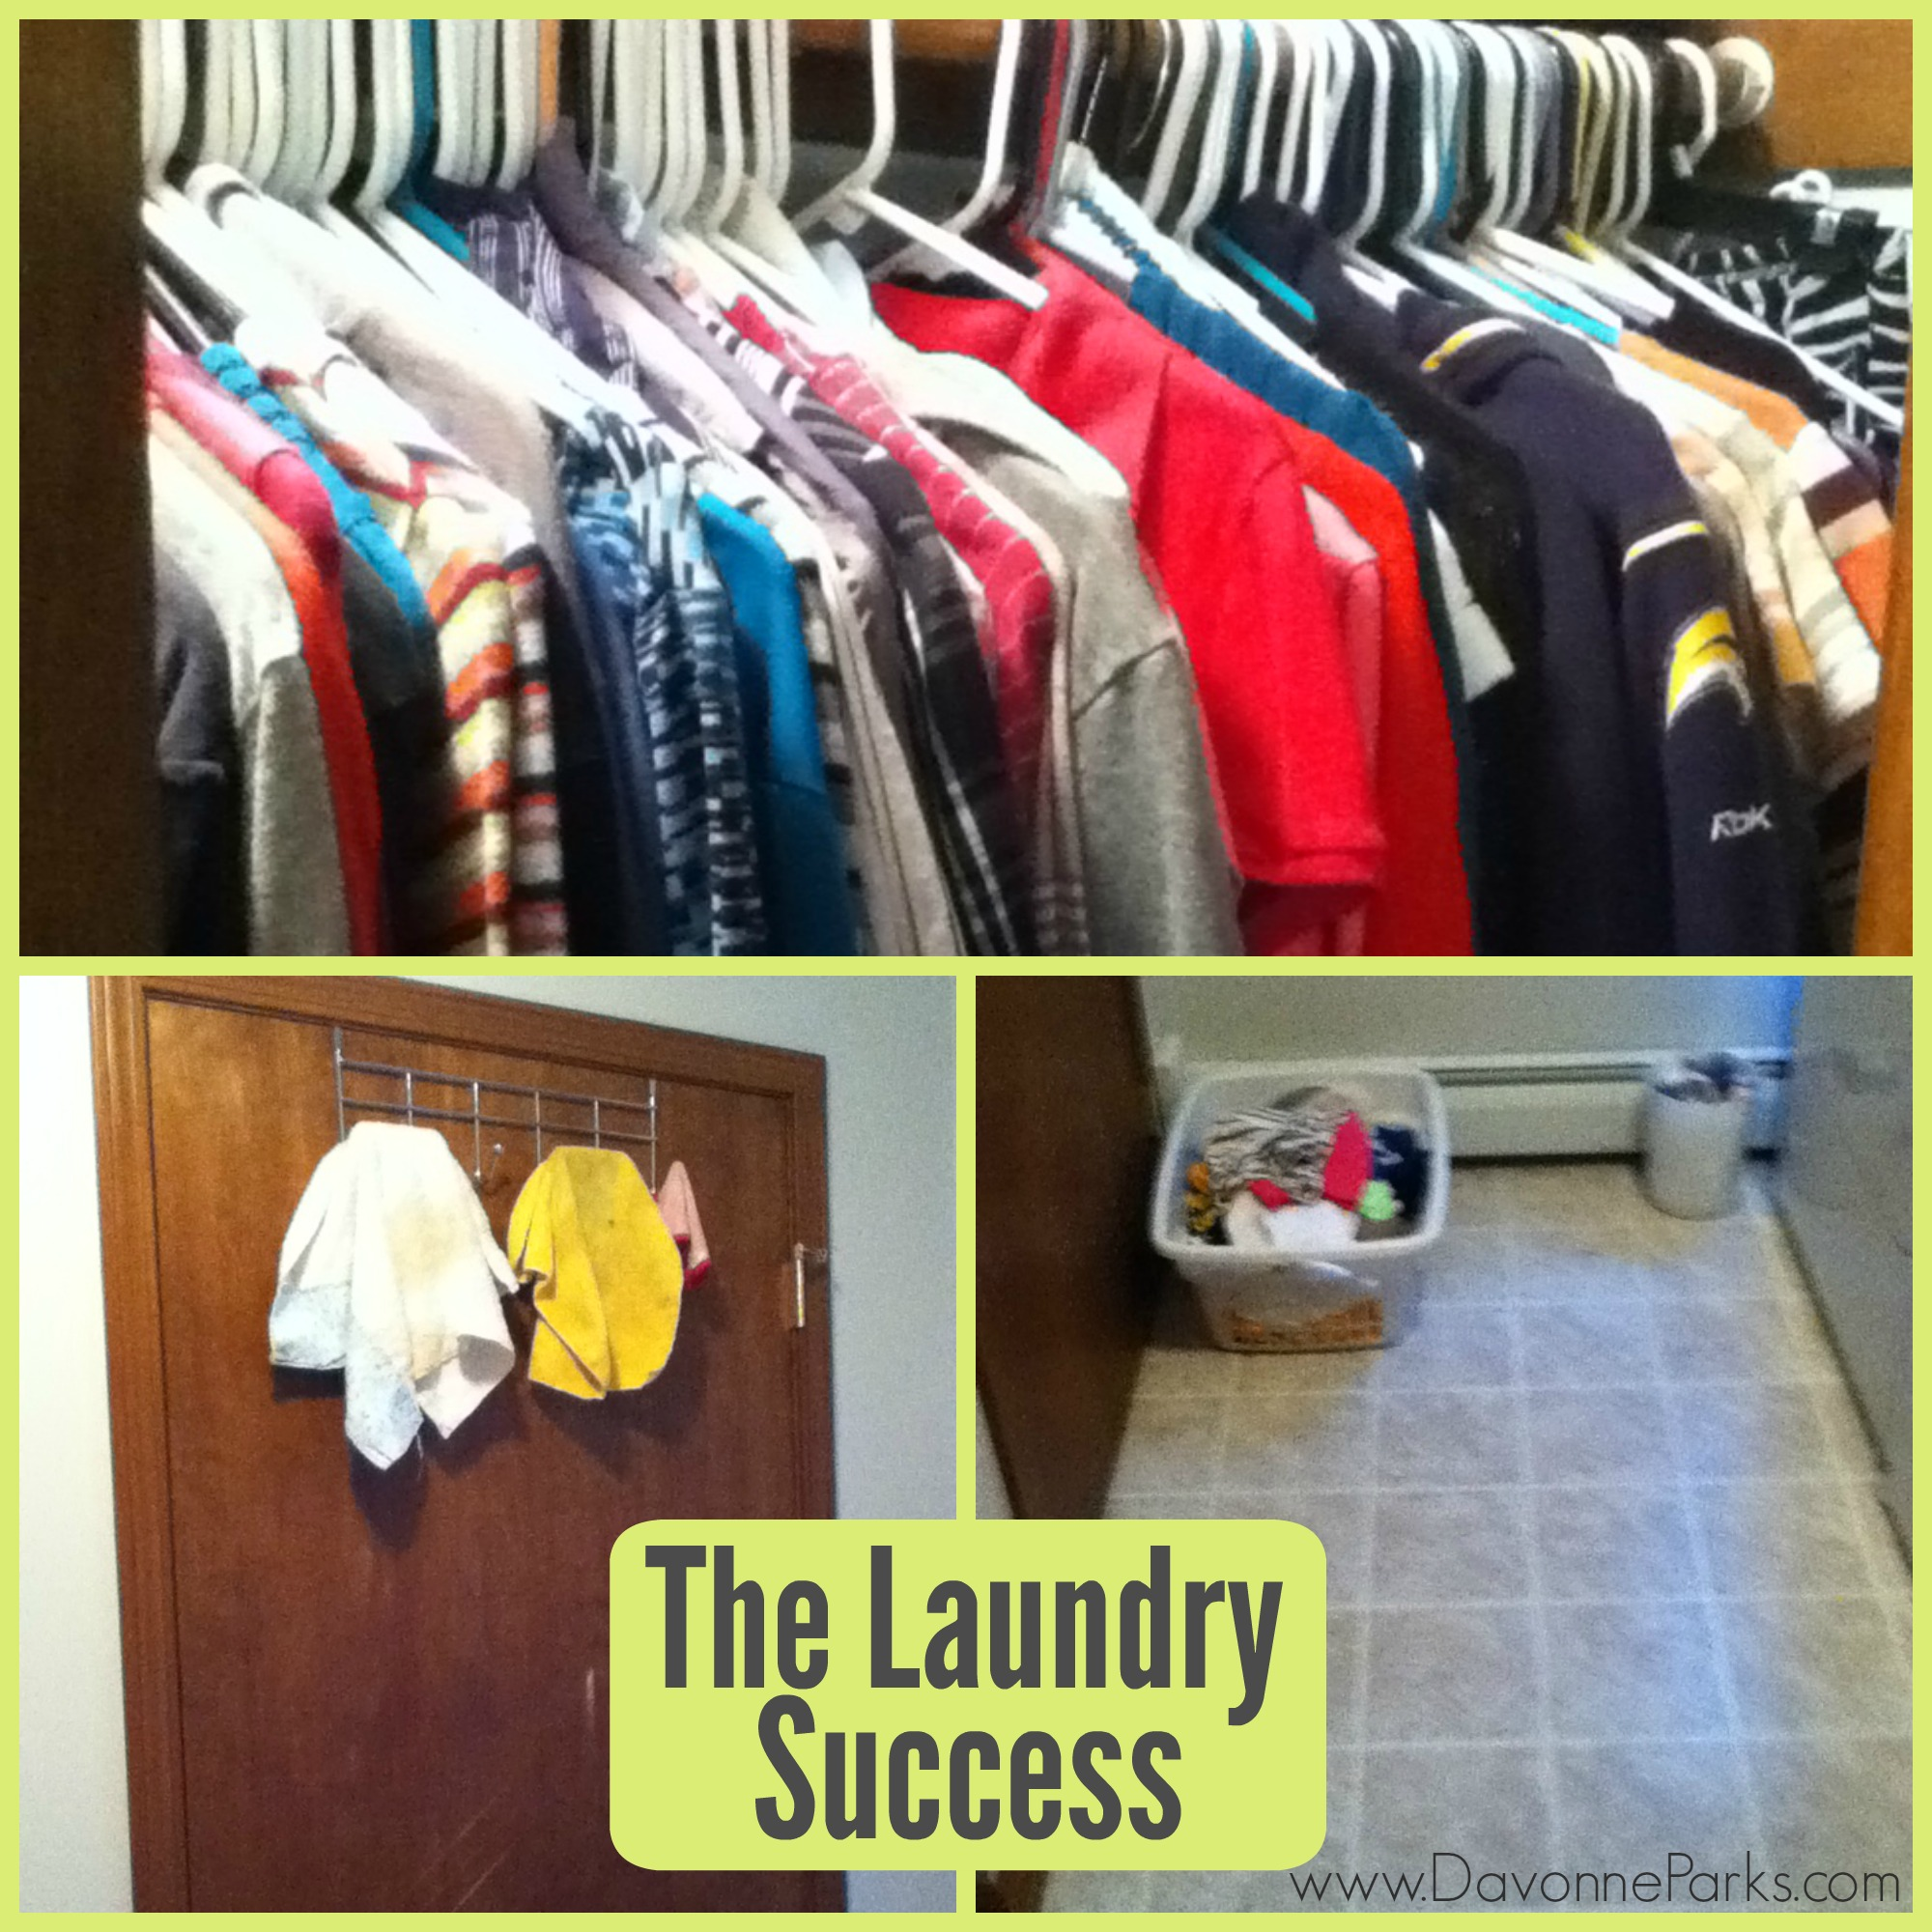 LaundrySuccess